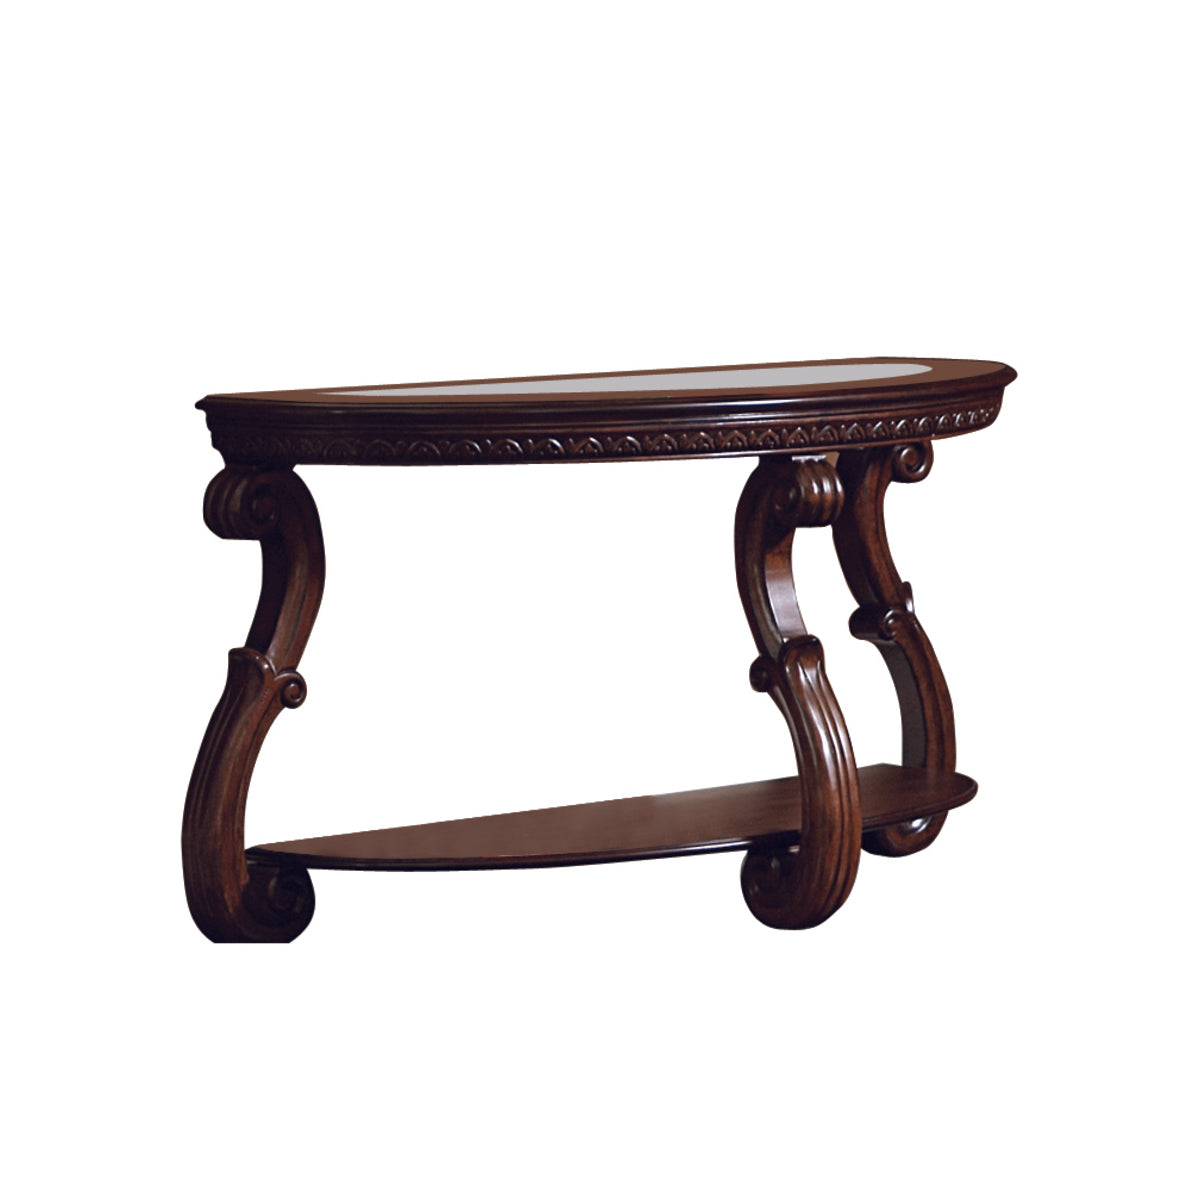 Homelegance Cavendish Cherry Wood Finish Sofa Console Table